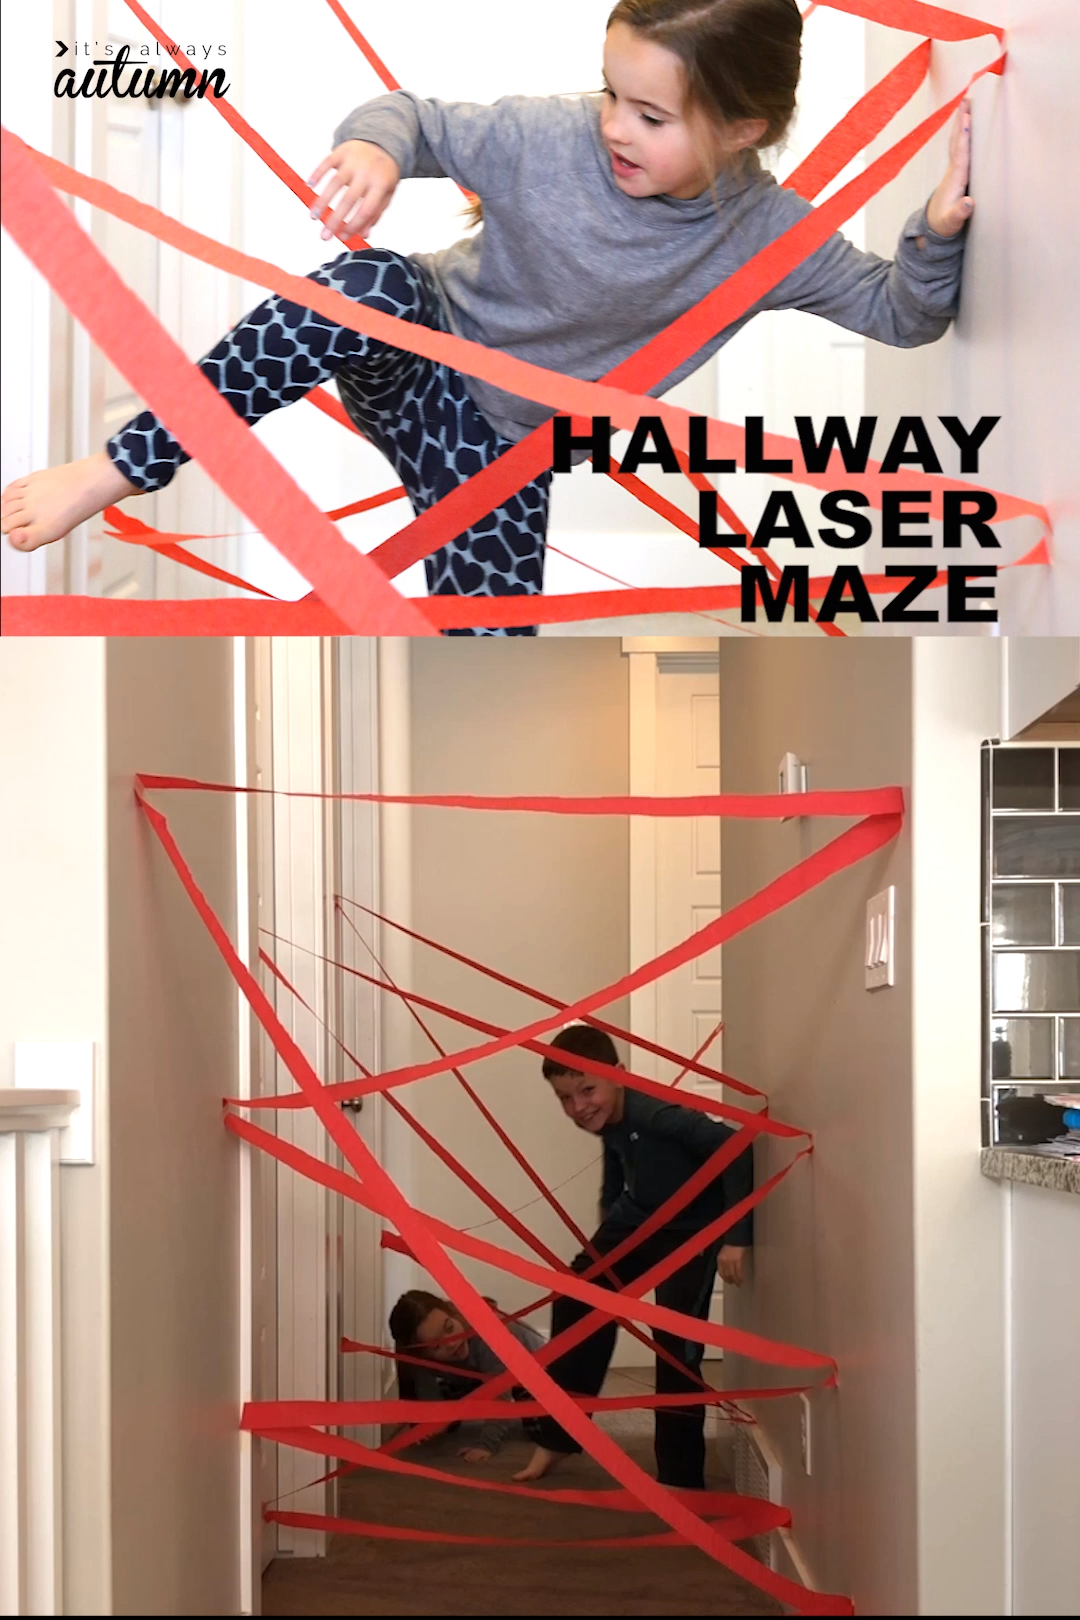 Use a roll of crepe paper to make a cool laser maze in your hallway! Fun indoor play idea for kids. #kids #indooractivities